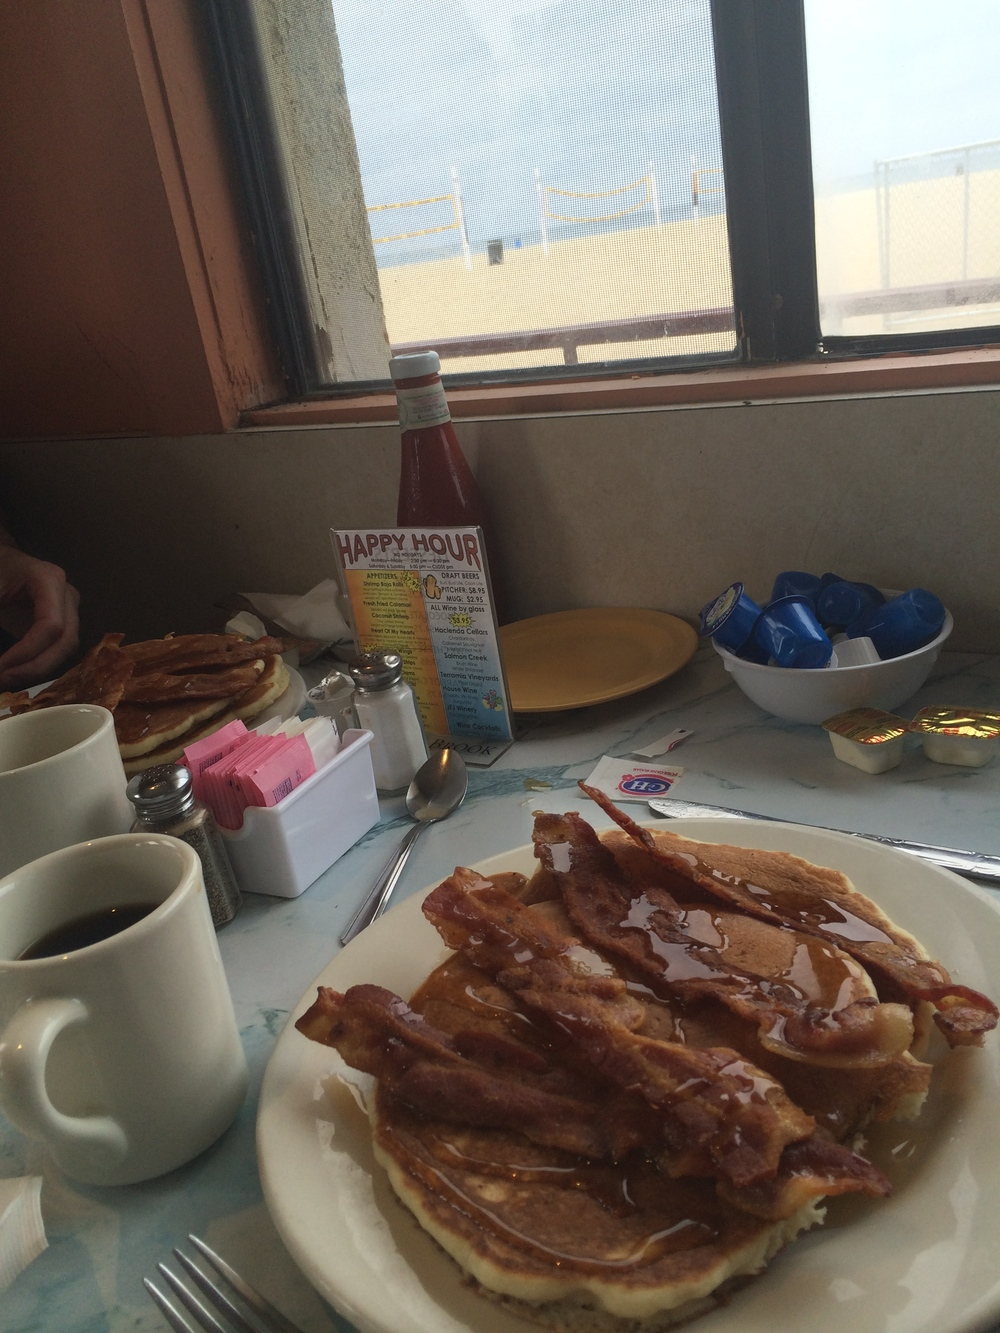 Breakfast at Scotty's